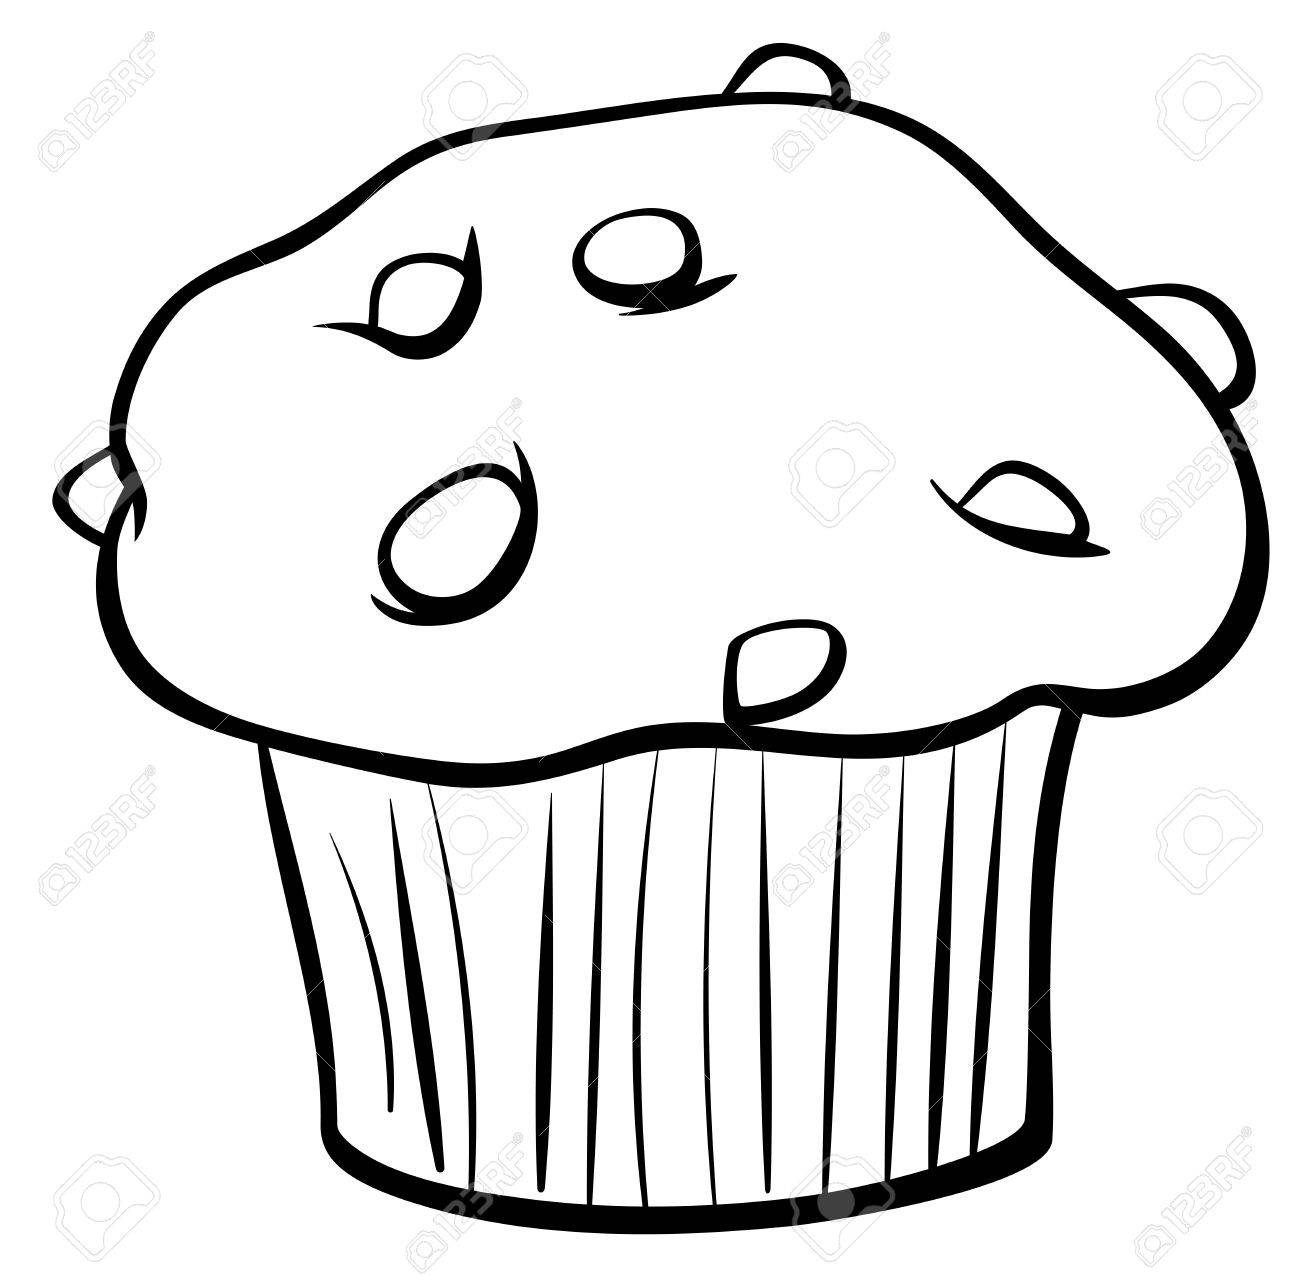 black and white cartoon illustration of sweet muffin cake with rh 123rf com muffin clip art free muffin clip art free